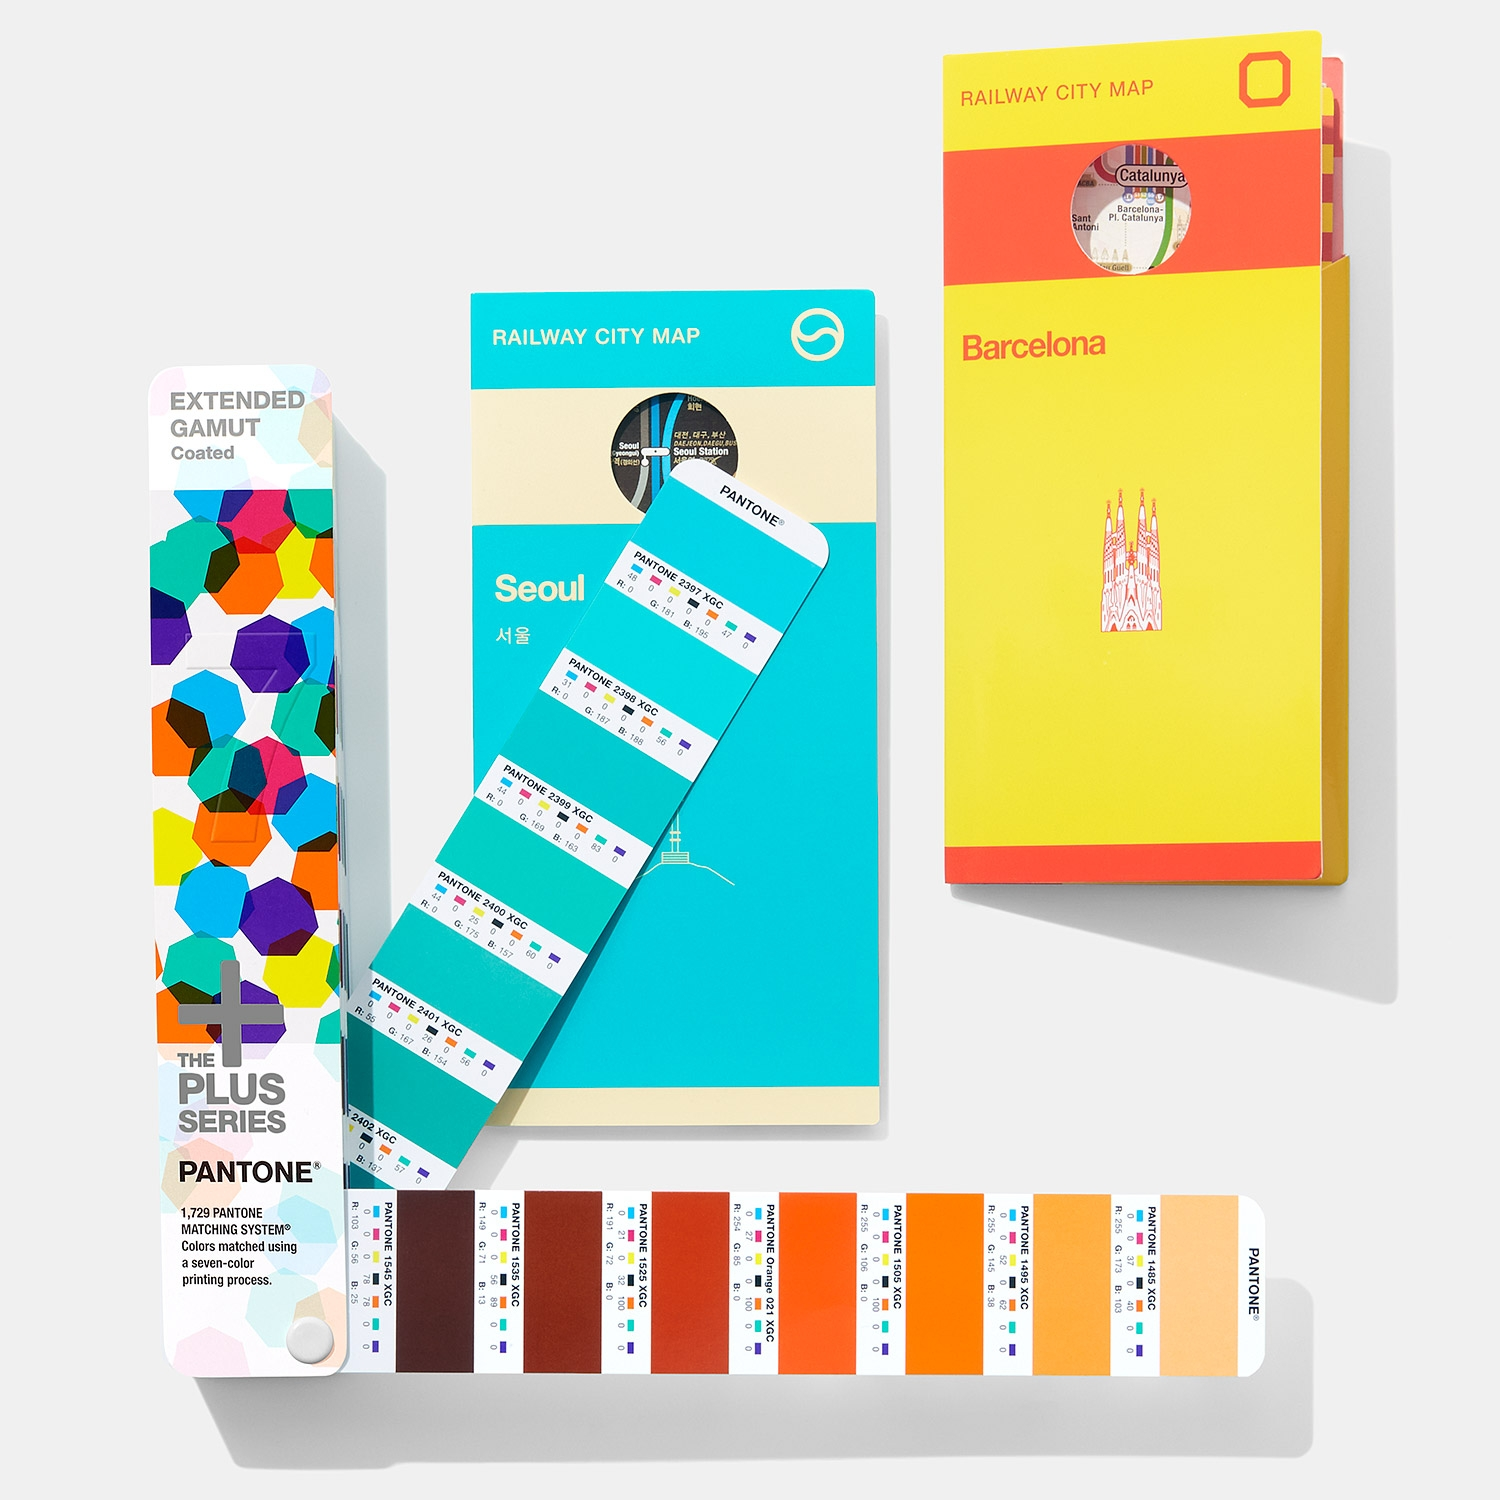 Pantone Extended Gamut Coated Guide - View 3